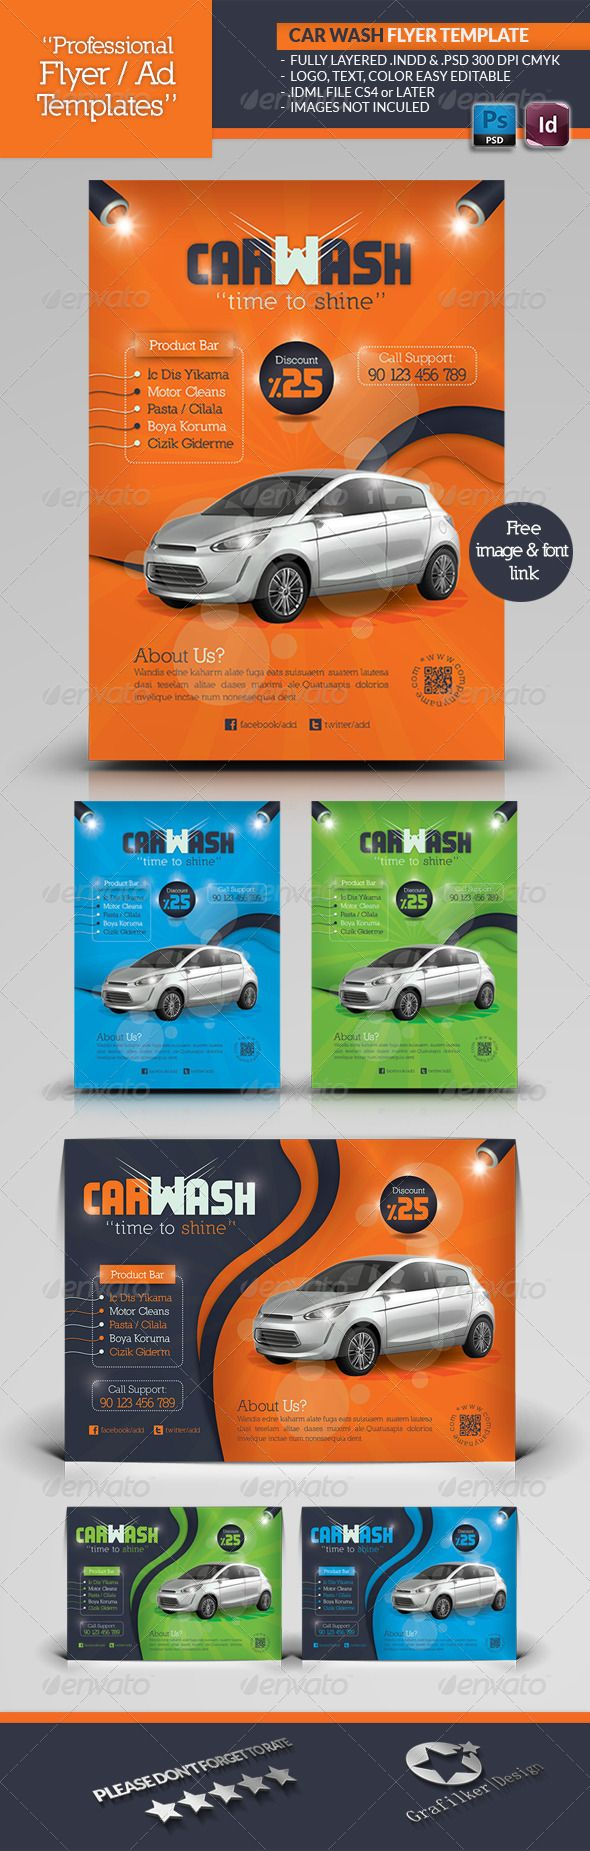 car wash flyer template automobile cars and fonts car wash flyer template corporate flyers